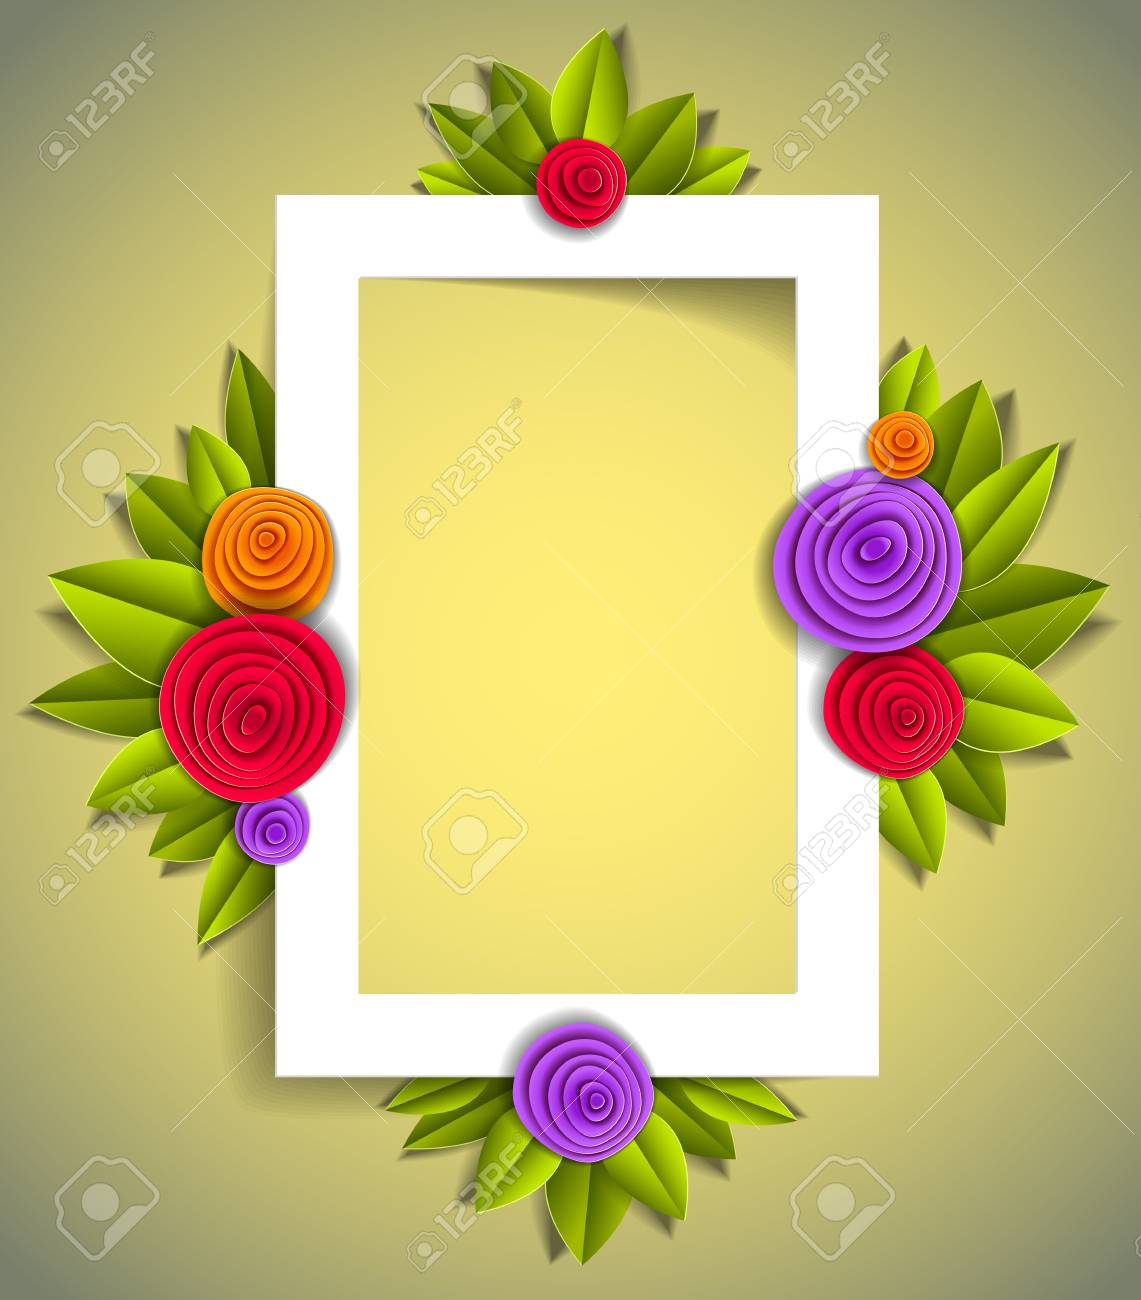 flowers and leaves beautiful background or frame with blank copy